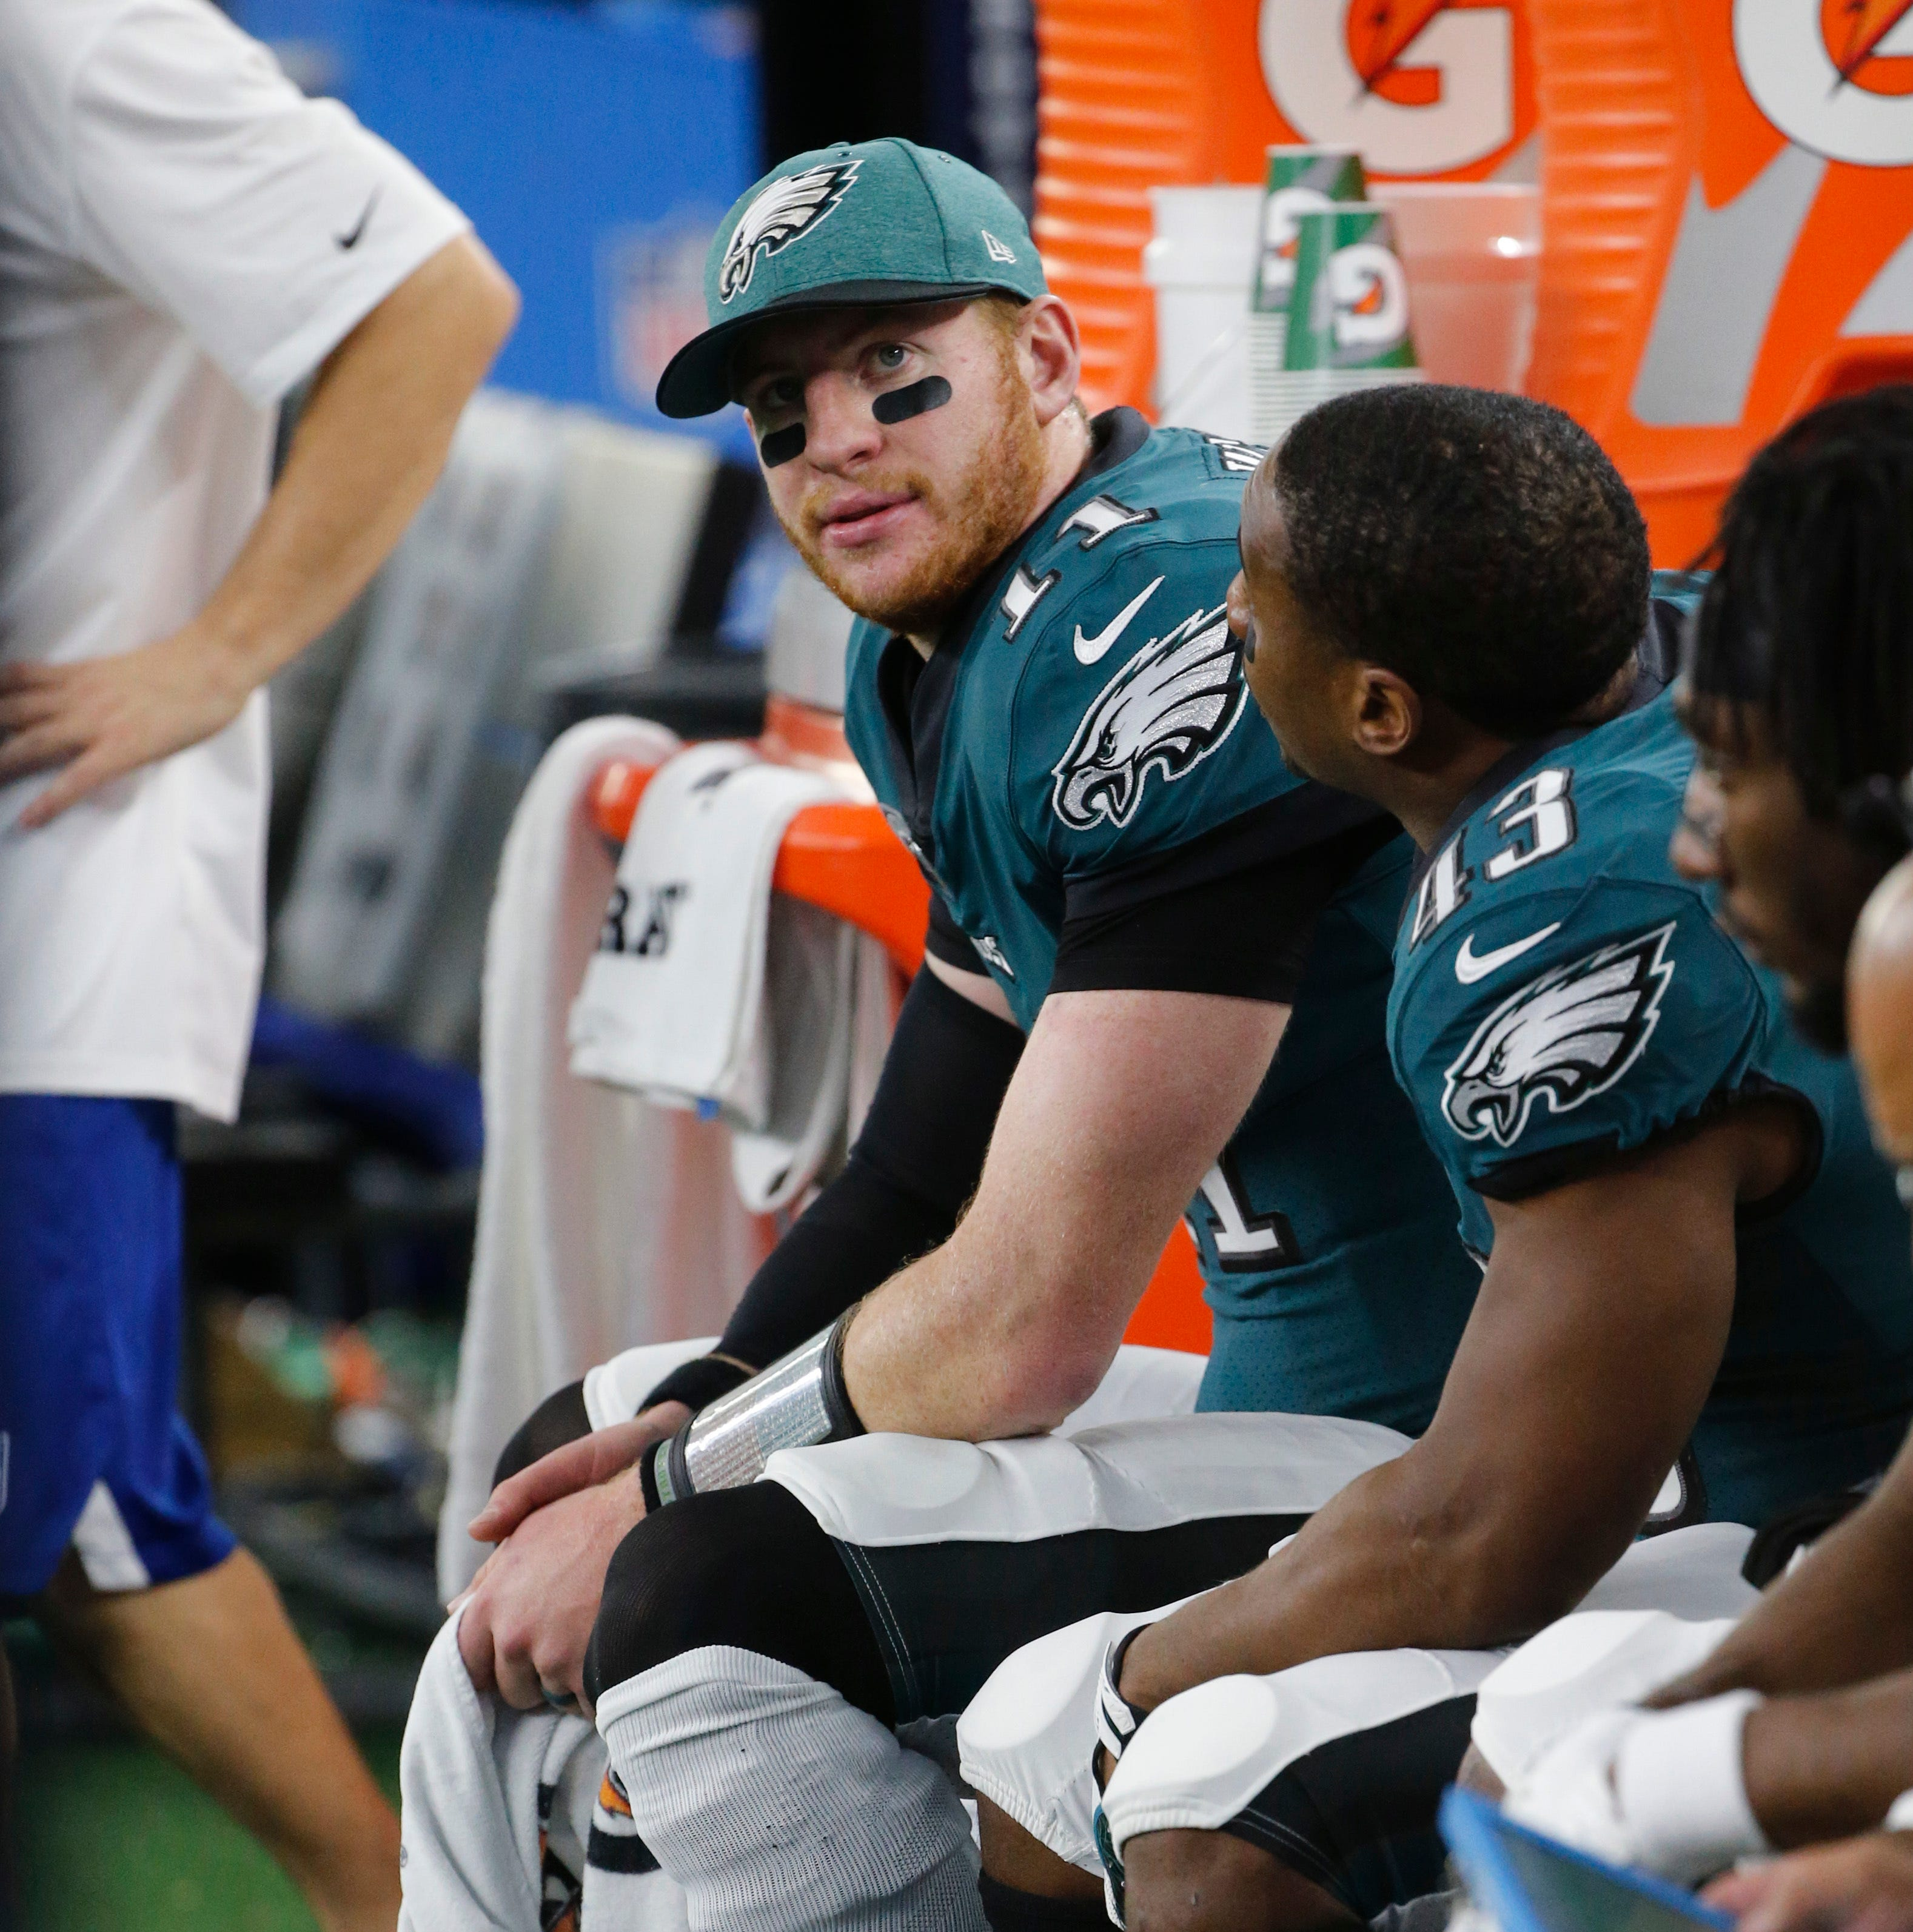 Eagles' Carson Wentz has a broken back, report says, but did he play through it?